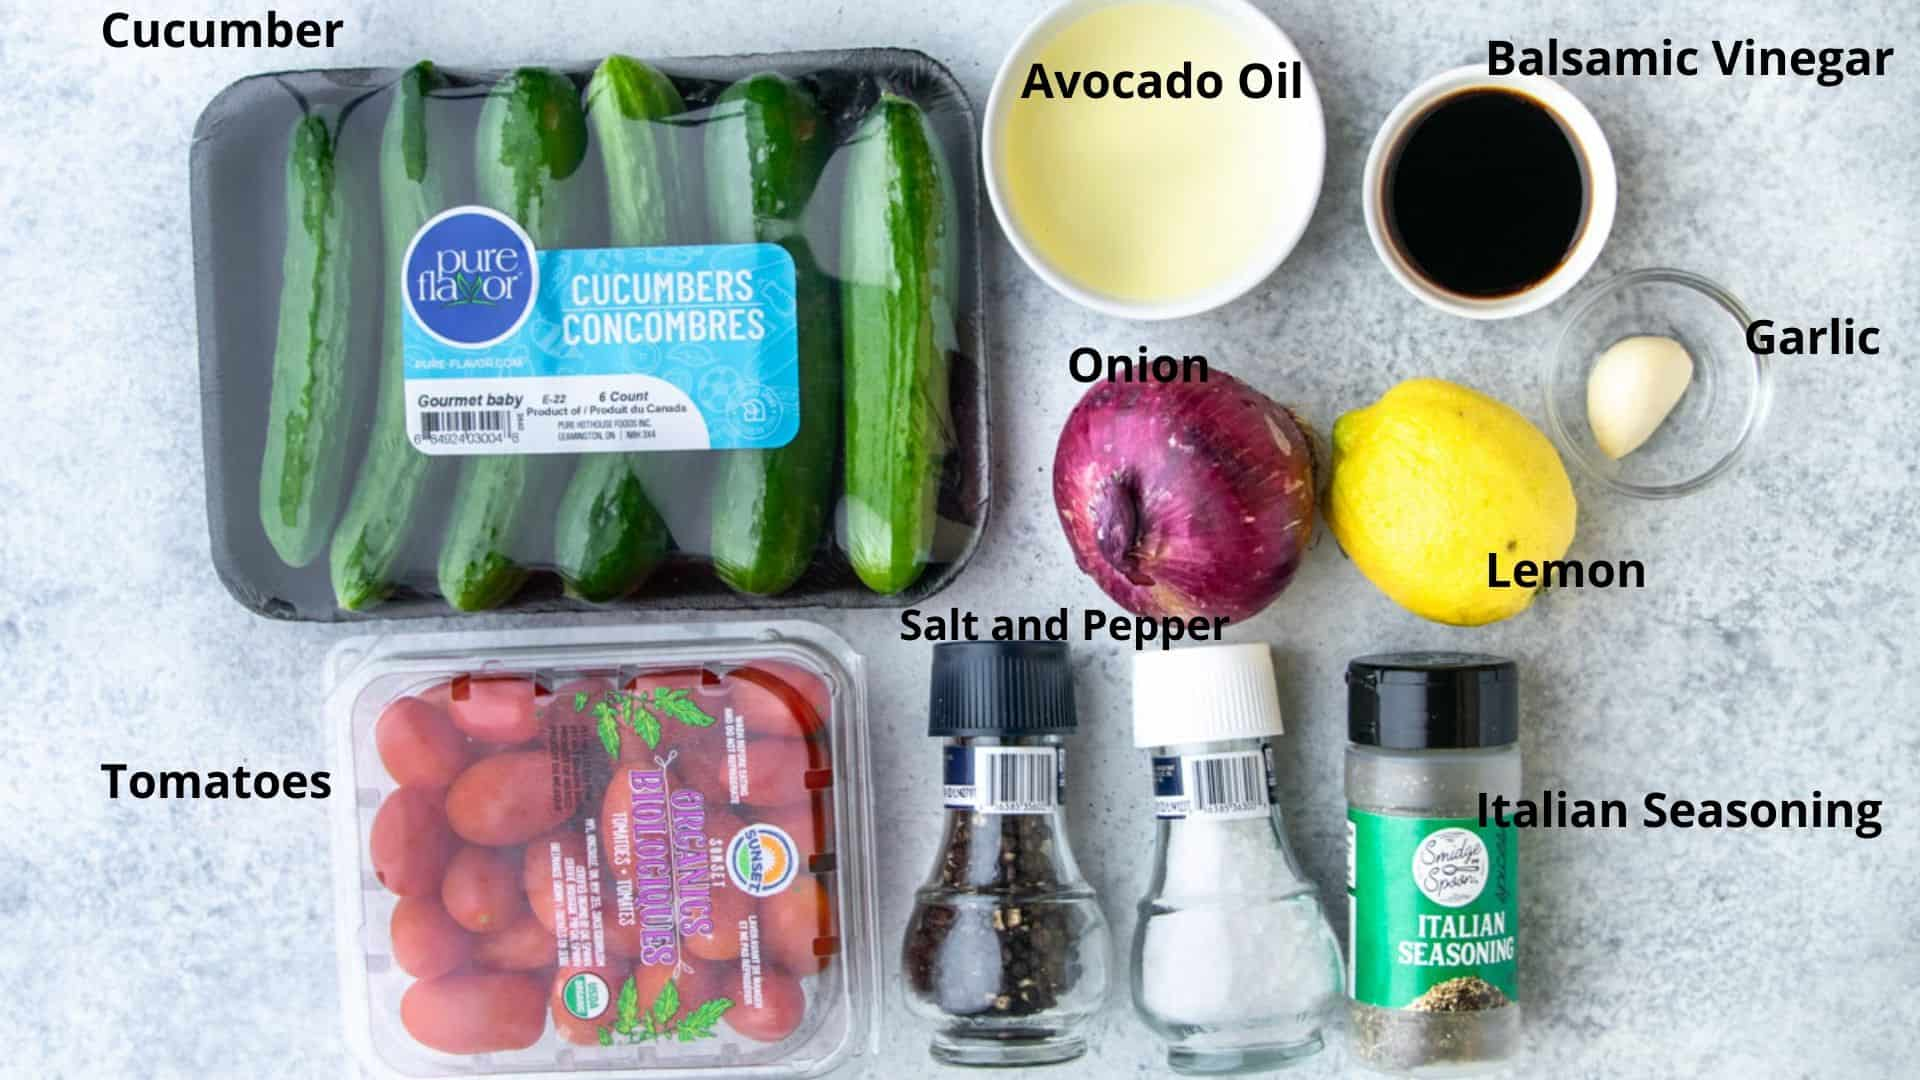 image of the ingredients used in making the salad